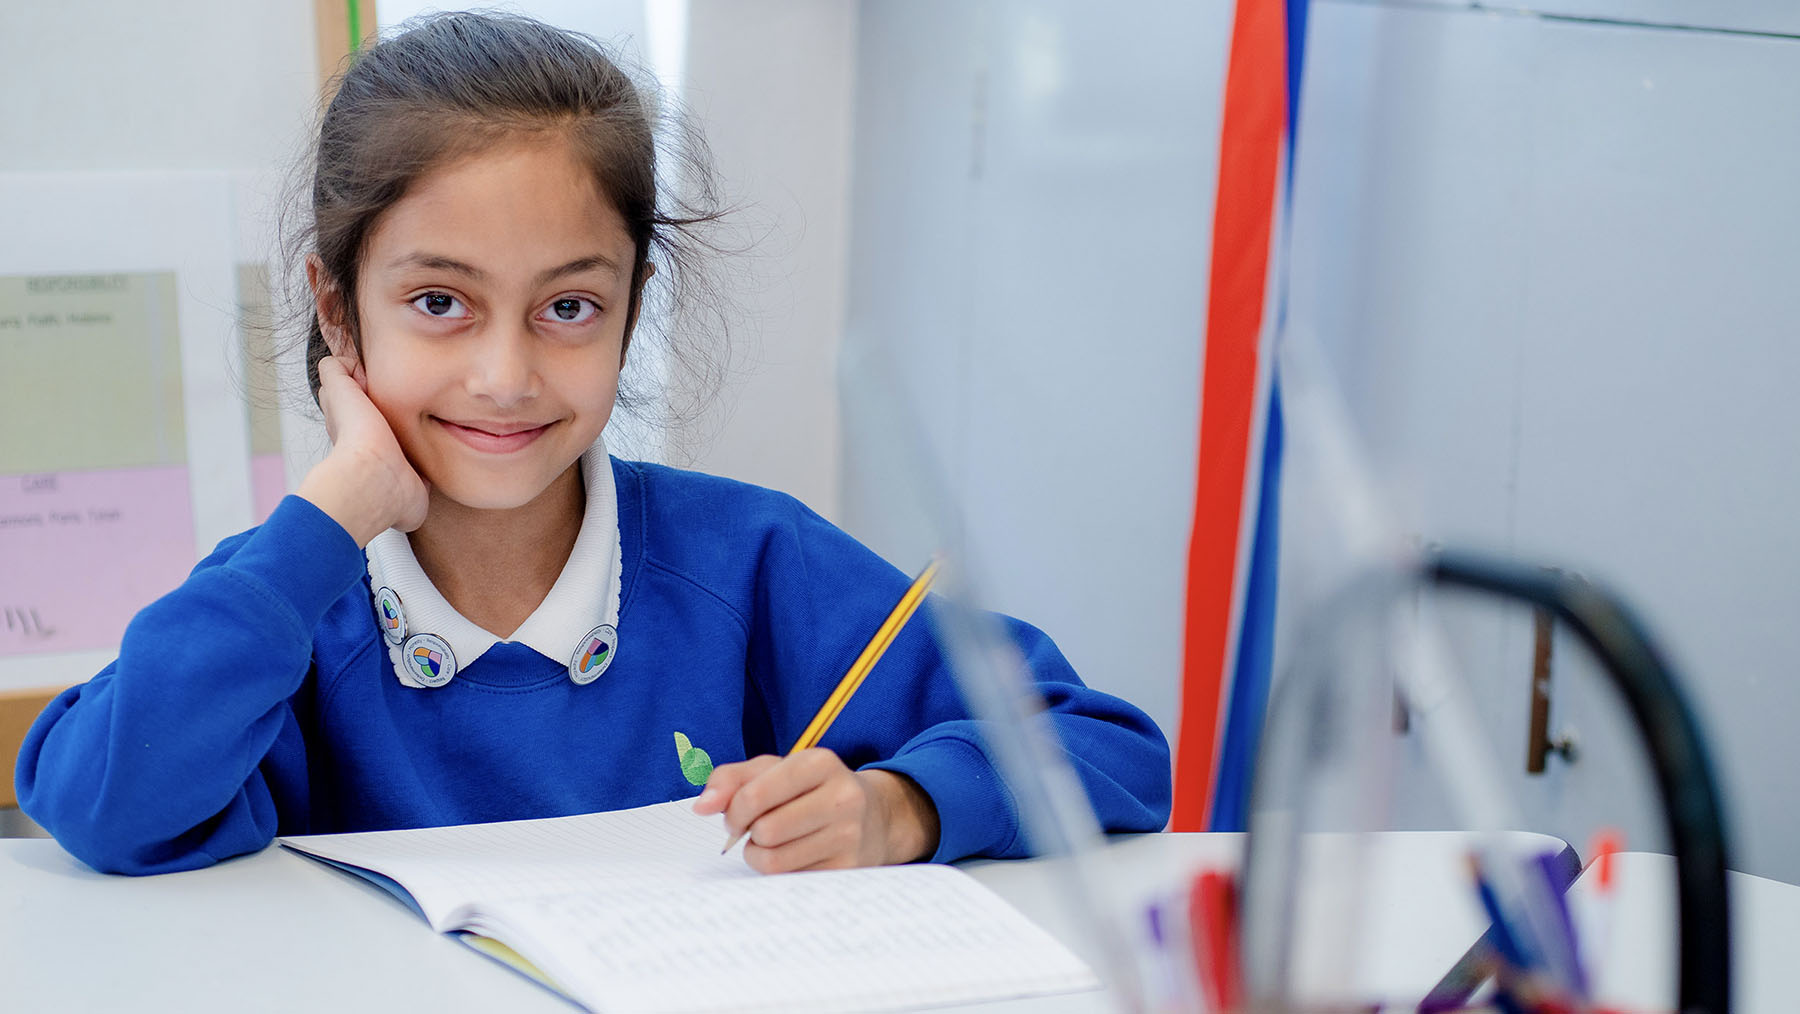 Girl working at desk in classroom smiling at the camera